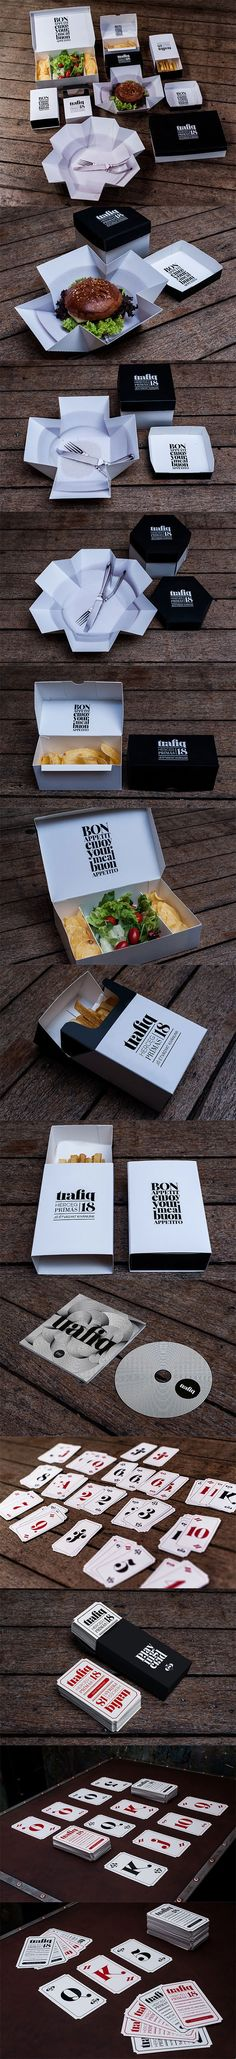 Really? a cigarette box for fries? If I want fast food, I really don't want to have to pay for your packaging, too.: